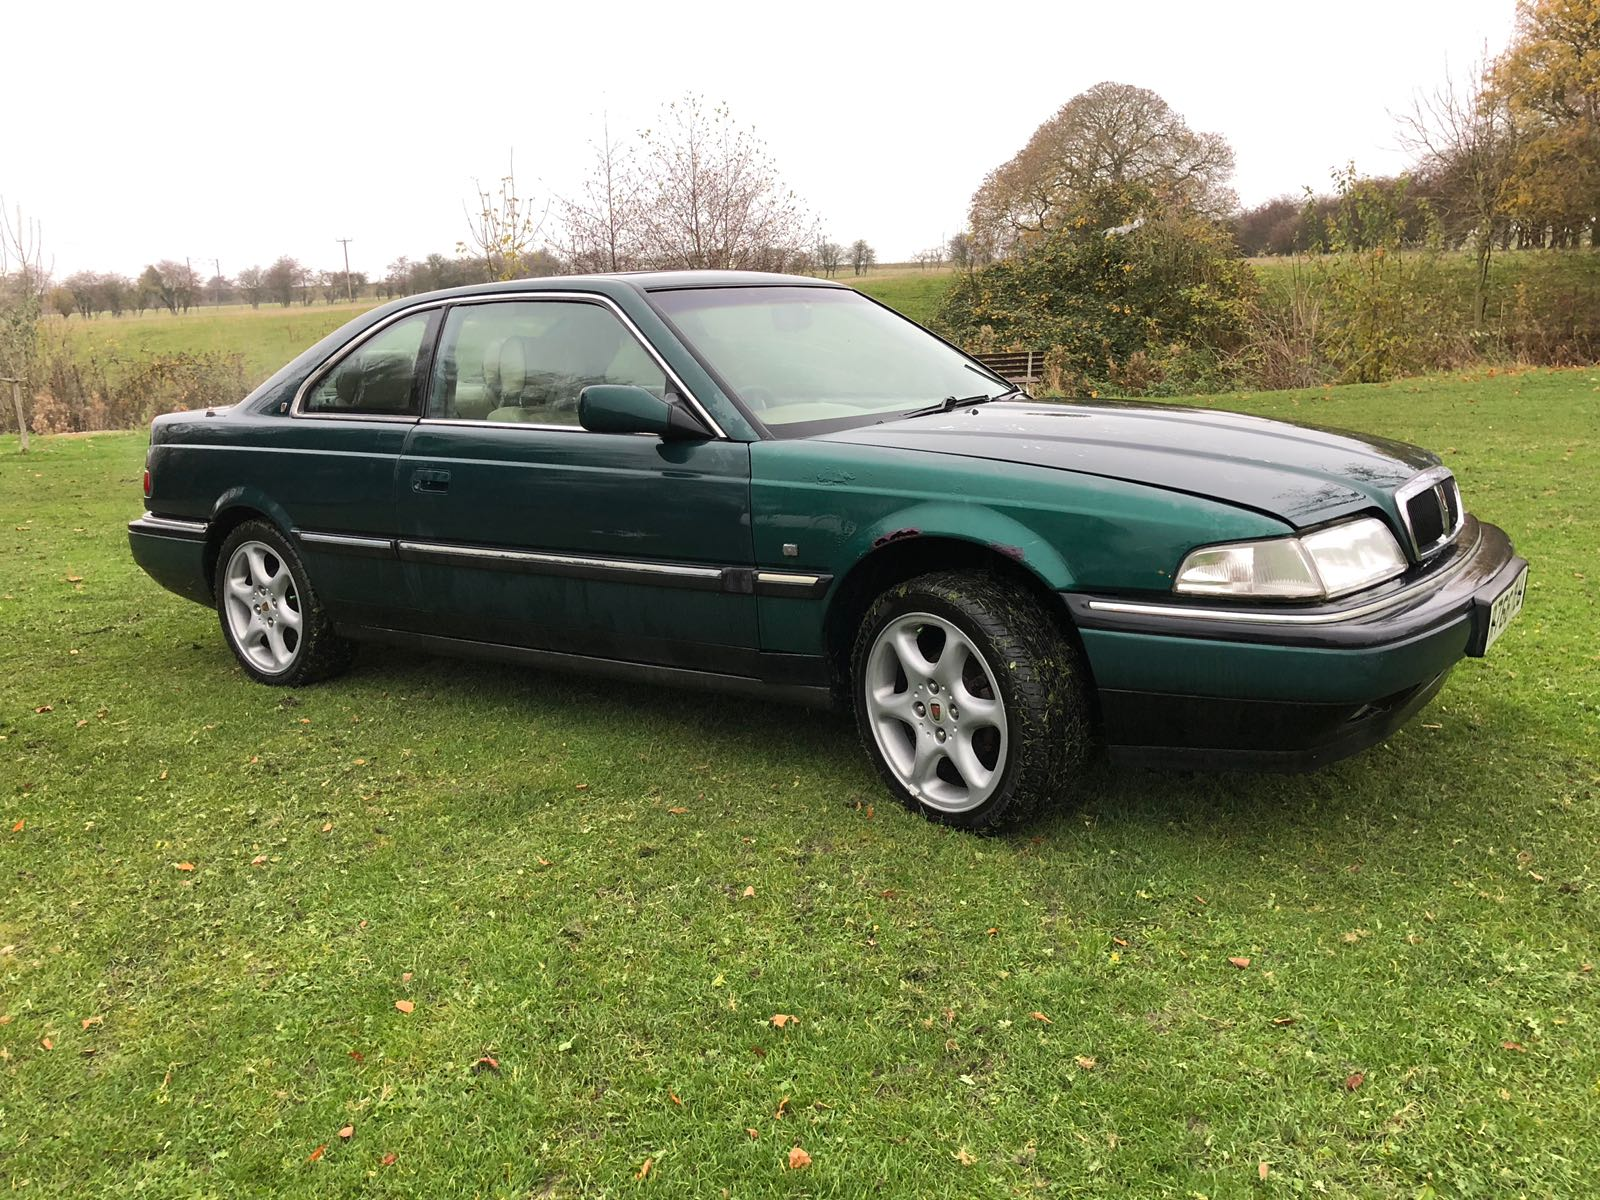 Lot 90 - 1997/R REG ROVER 825 STERLING COUPE 2.5 PETROL AUTOMATIC GREEN *NO VAT*